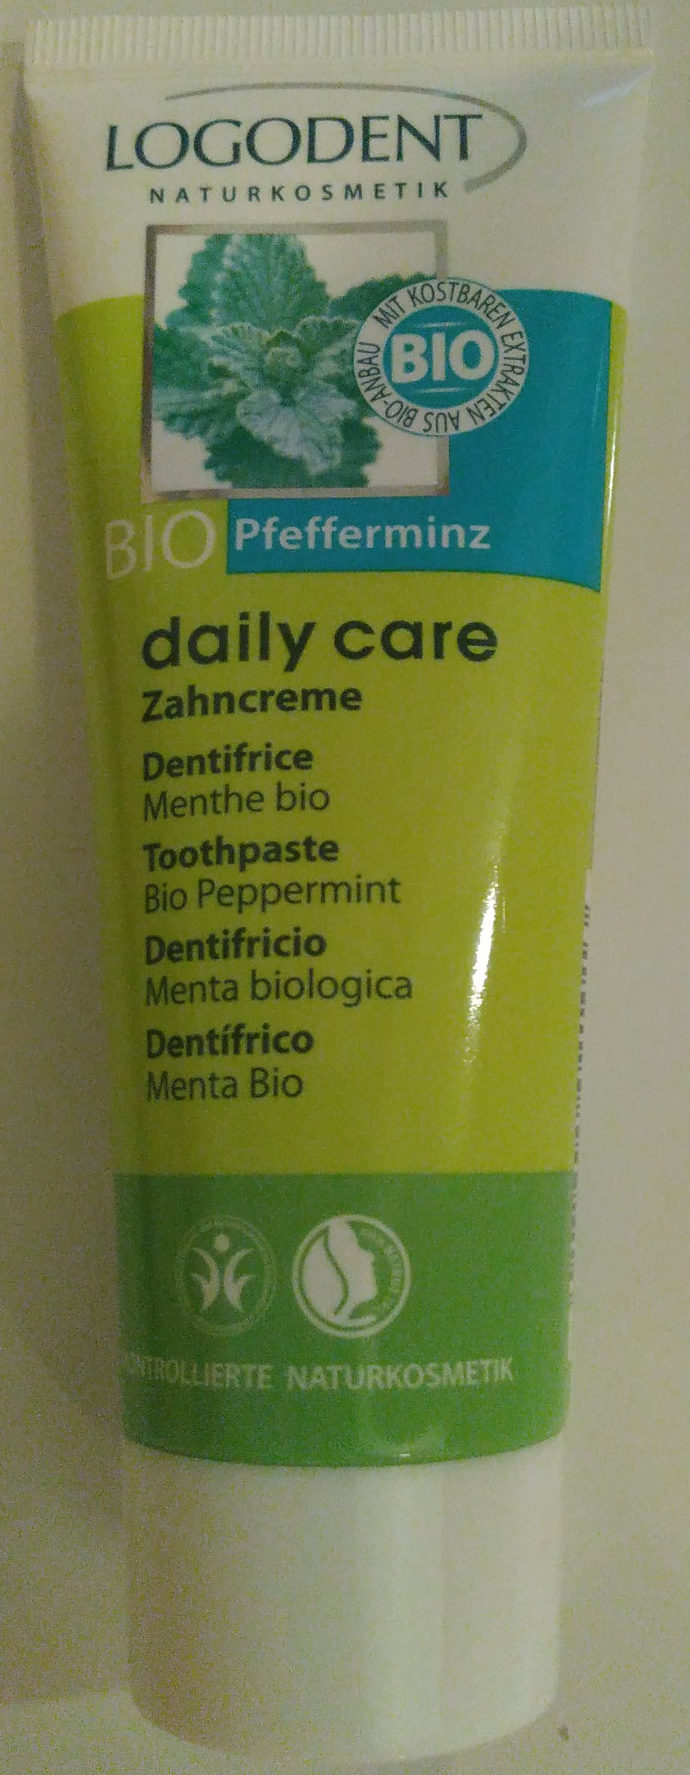 Dentifrice Menthe bio - Product - fr